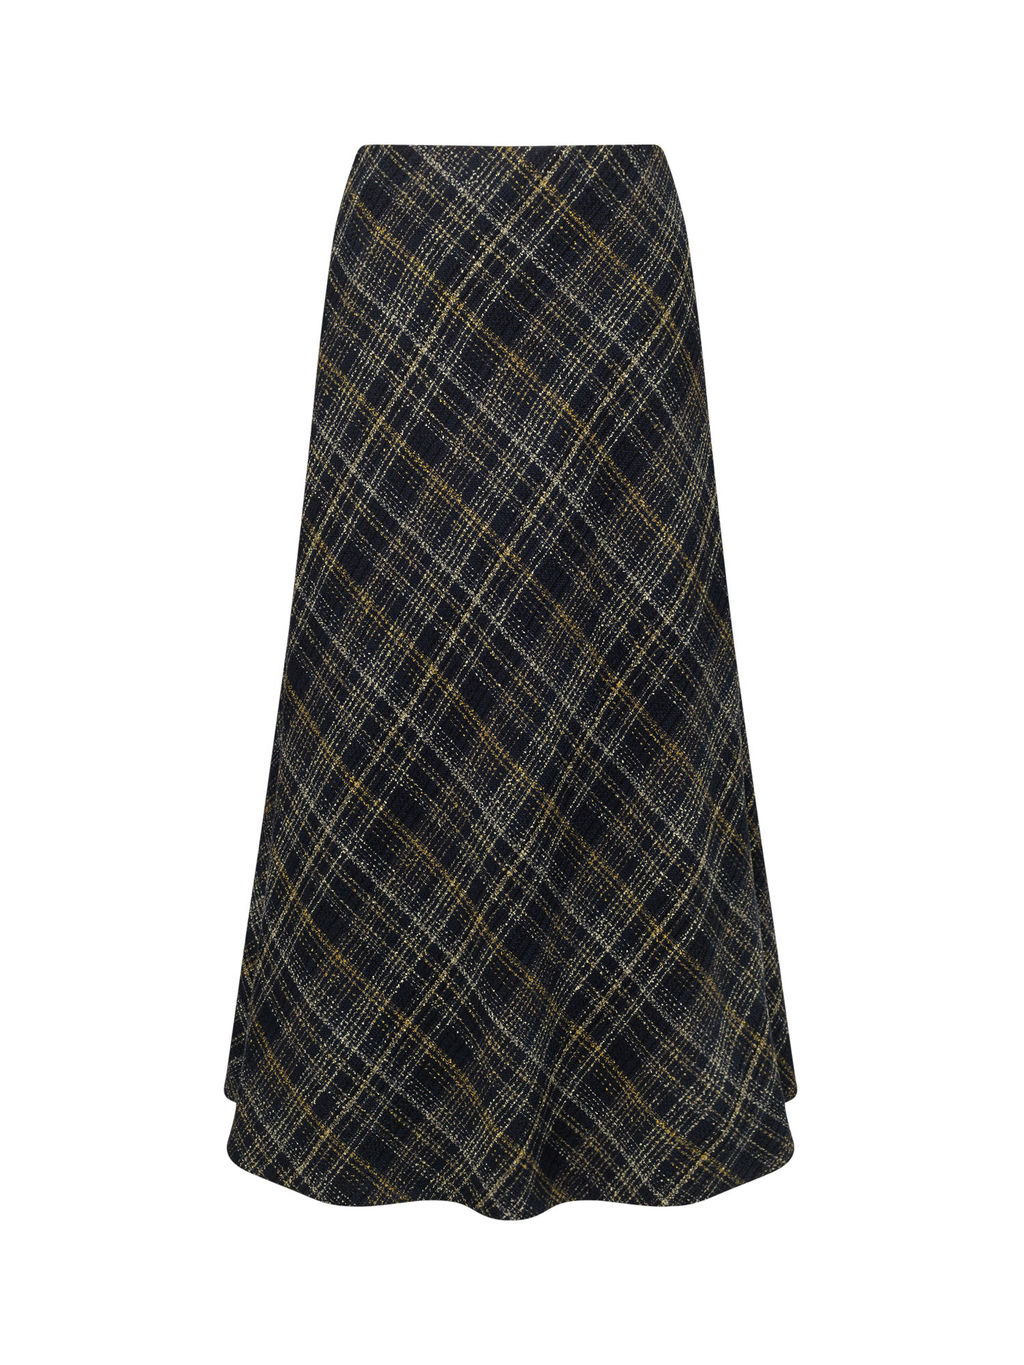 Bias Cut Tweed Skirt - length: calf length; pattern: checked/gingham; fit: loose/voluminous; waist: mid/regular rise; secondary colour: yellow; predominant colour: black; occasions: work, creative work; style: a-line; fibres: acrylic - mix; pattern type: fabric; texture group: woven light midweight; pattern size: standard (bottom); multicoloured: multicoloured; season: a/w 2016; wardrobe: highlight